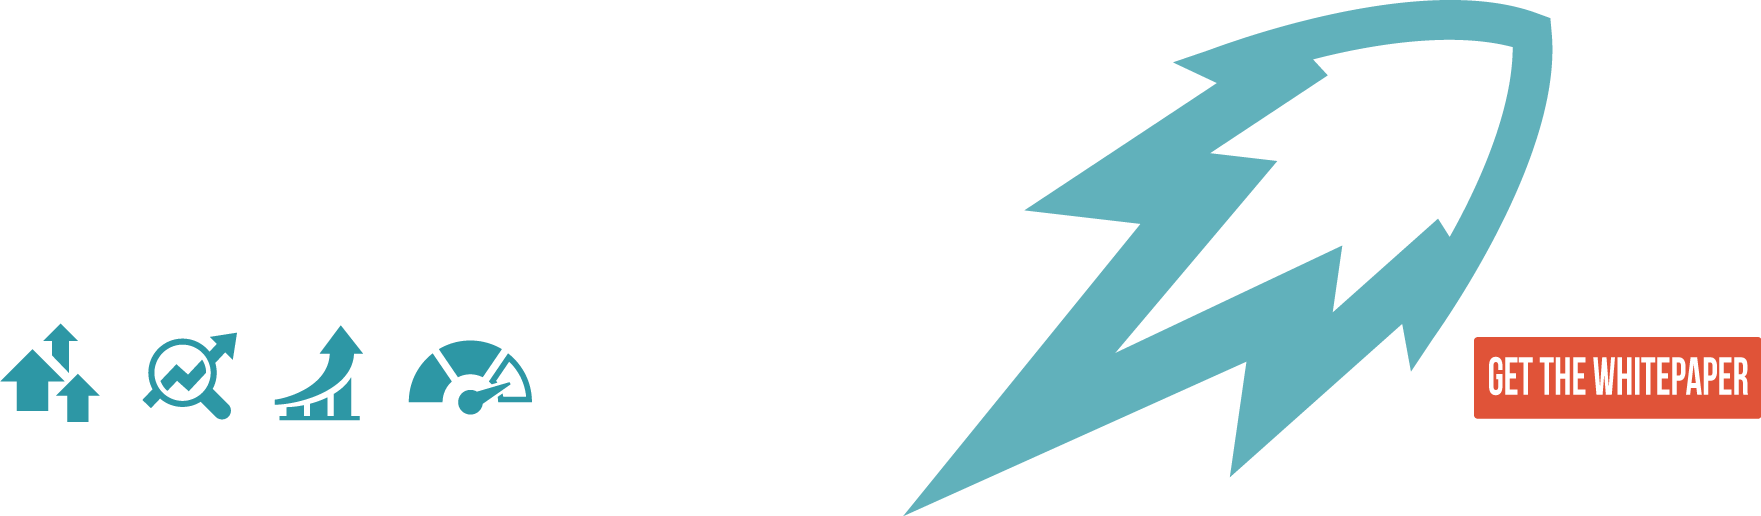 experience-layer-wp-blog-bannerai1.png